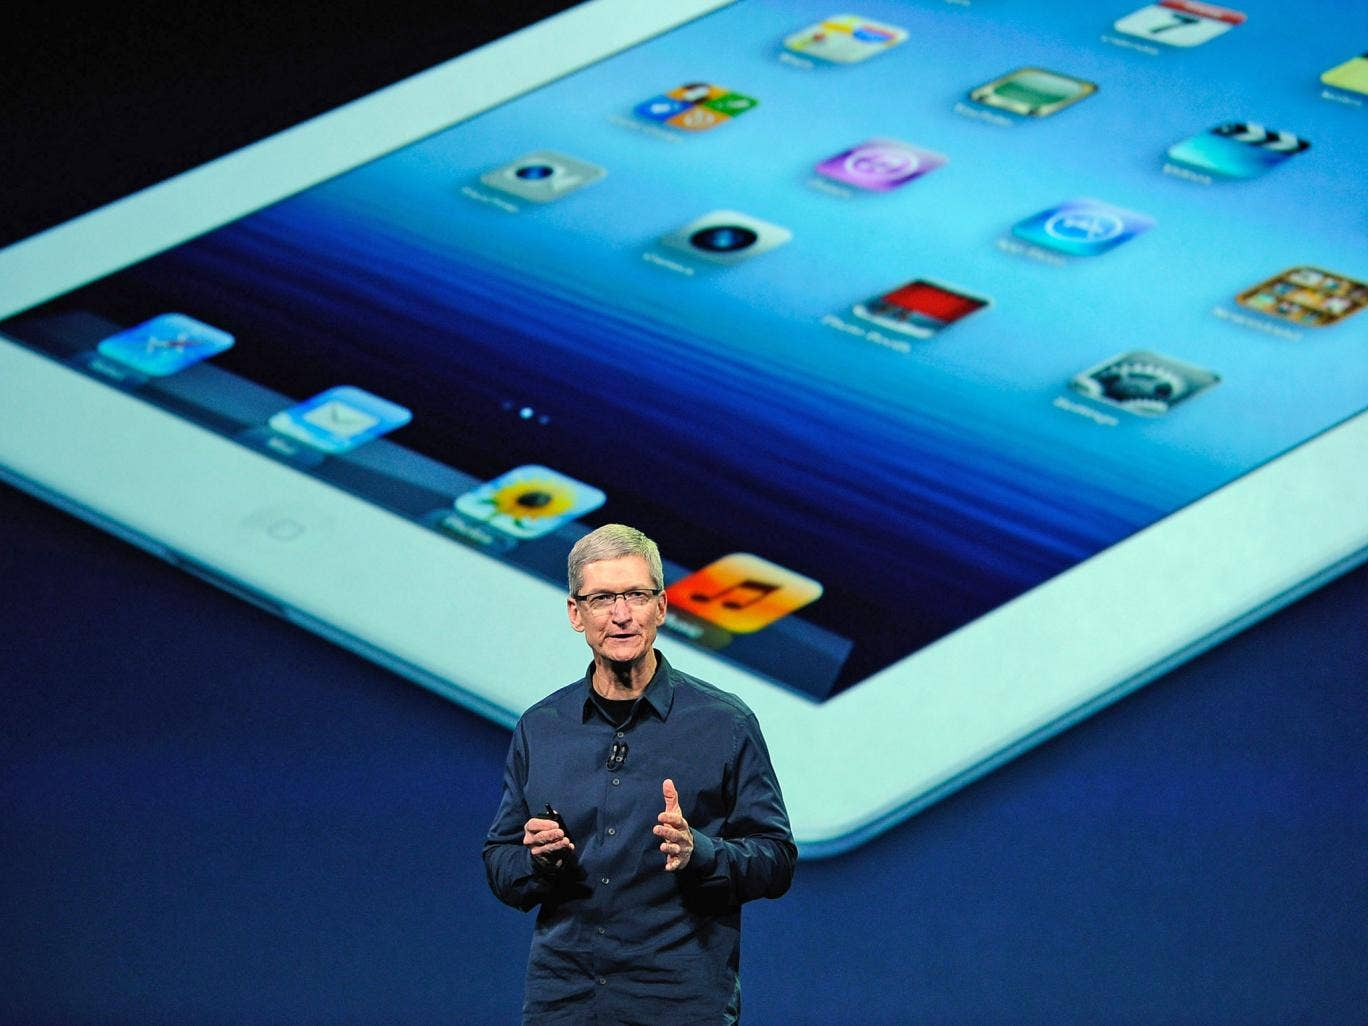 Apple CEO Tim Cook unveiling the fourth generation iPad in 2012